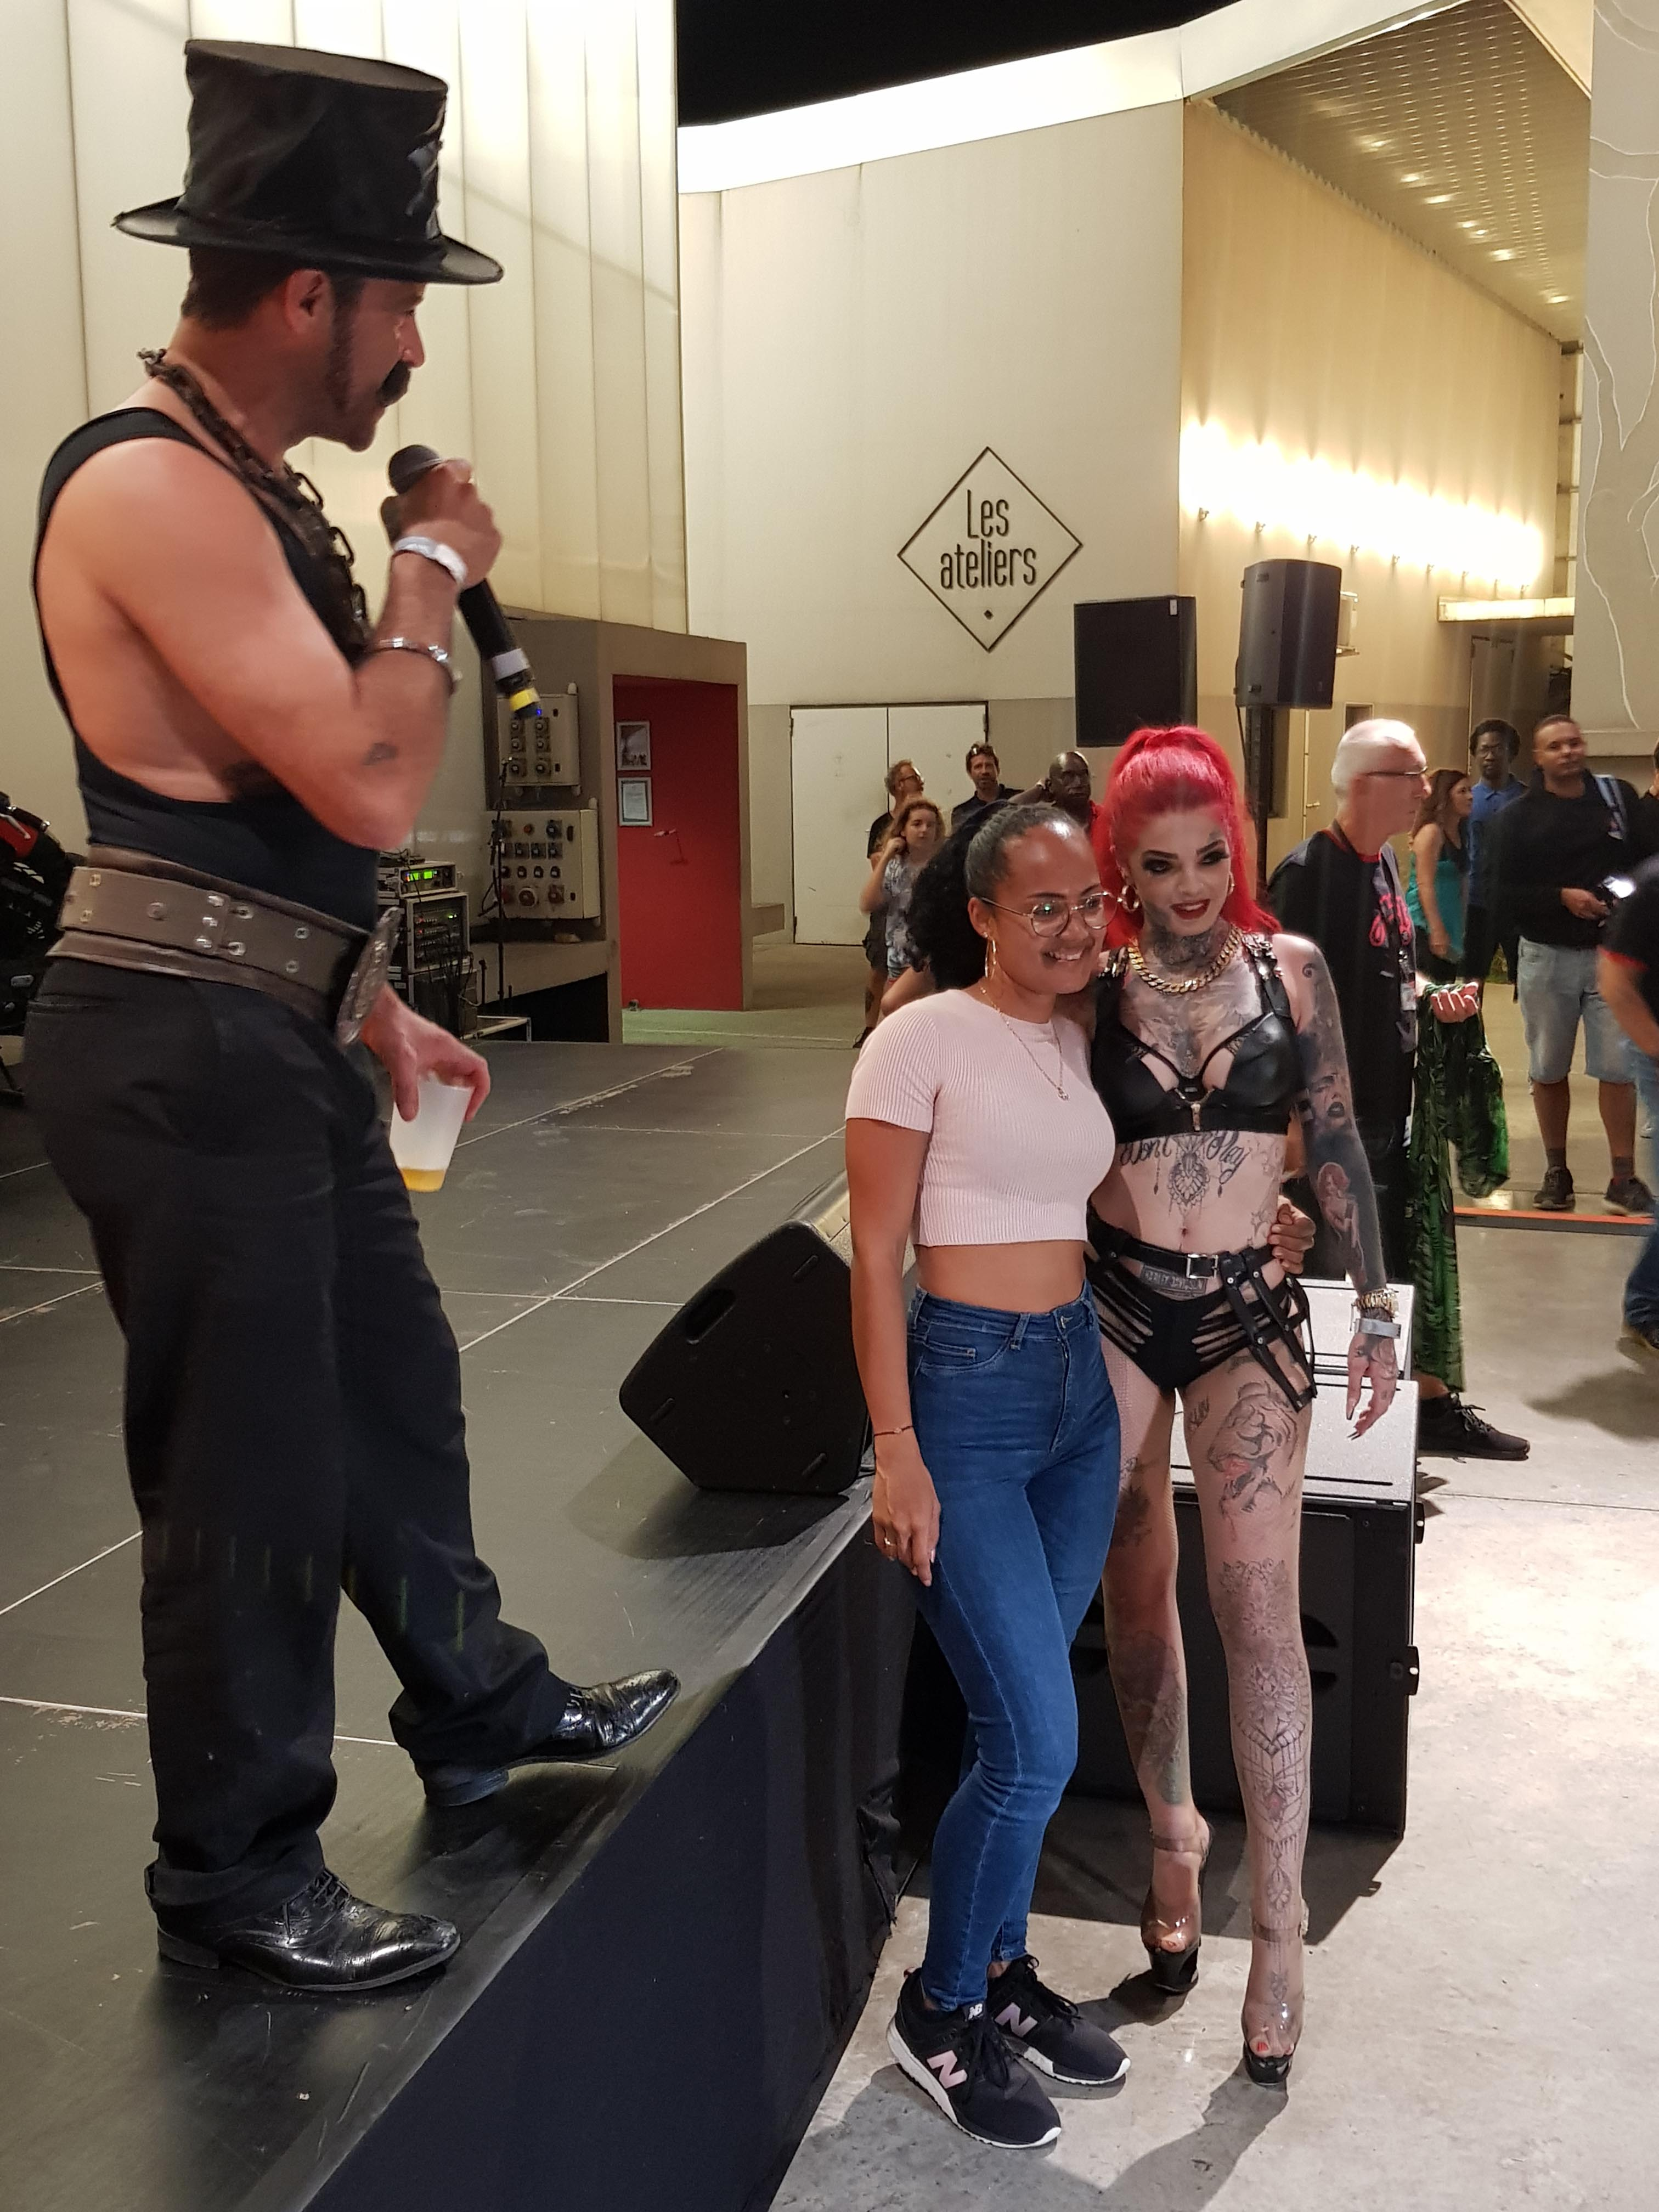 Mia Dolls à la Convention Tattoo 2019 de Saint-Denis